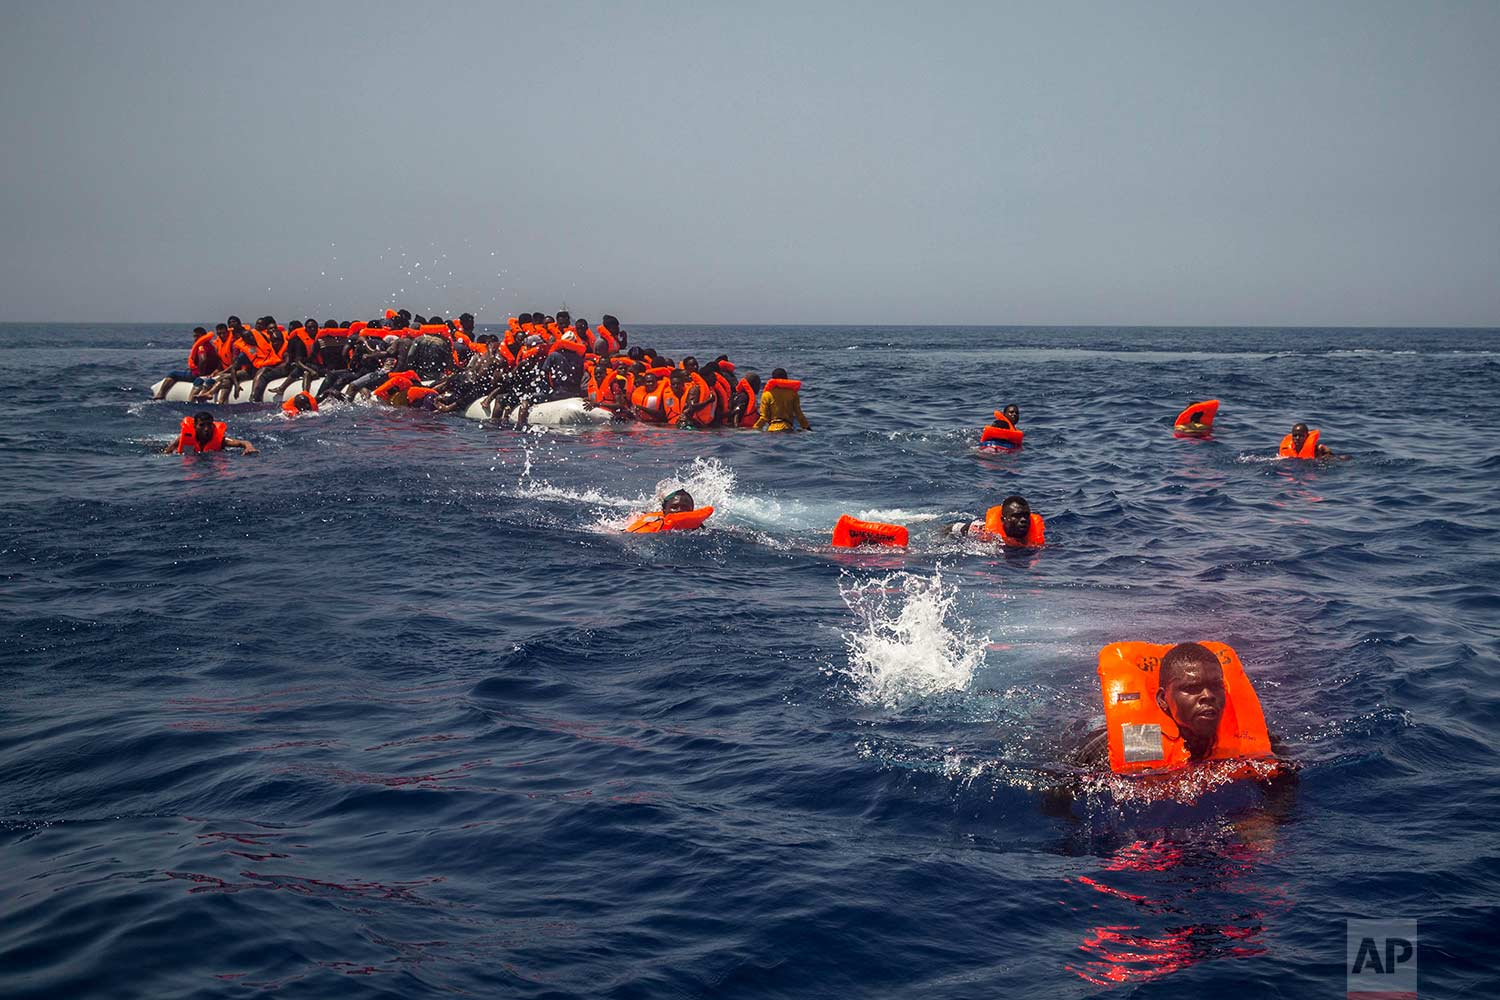 African migrants try to reach a Spanish NGO Proactiva Open Arms rescue ship after falling from a punctured rubber boat in the Mediterranean Sea, about 12 miles north of Sabratha, Libya on Sunday, July 23, 2017. (AP Photo/Santi Palacios)